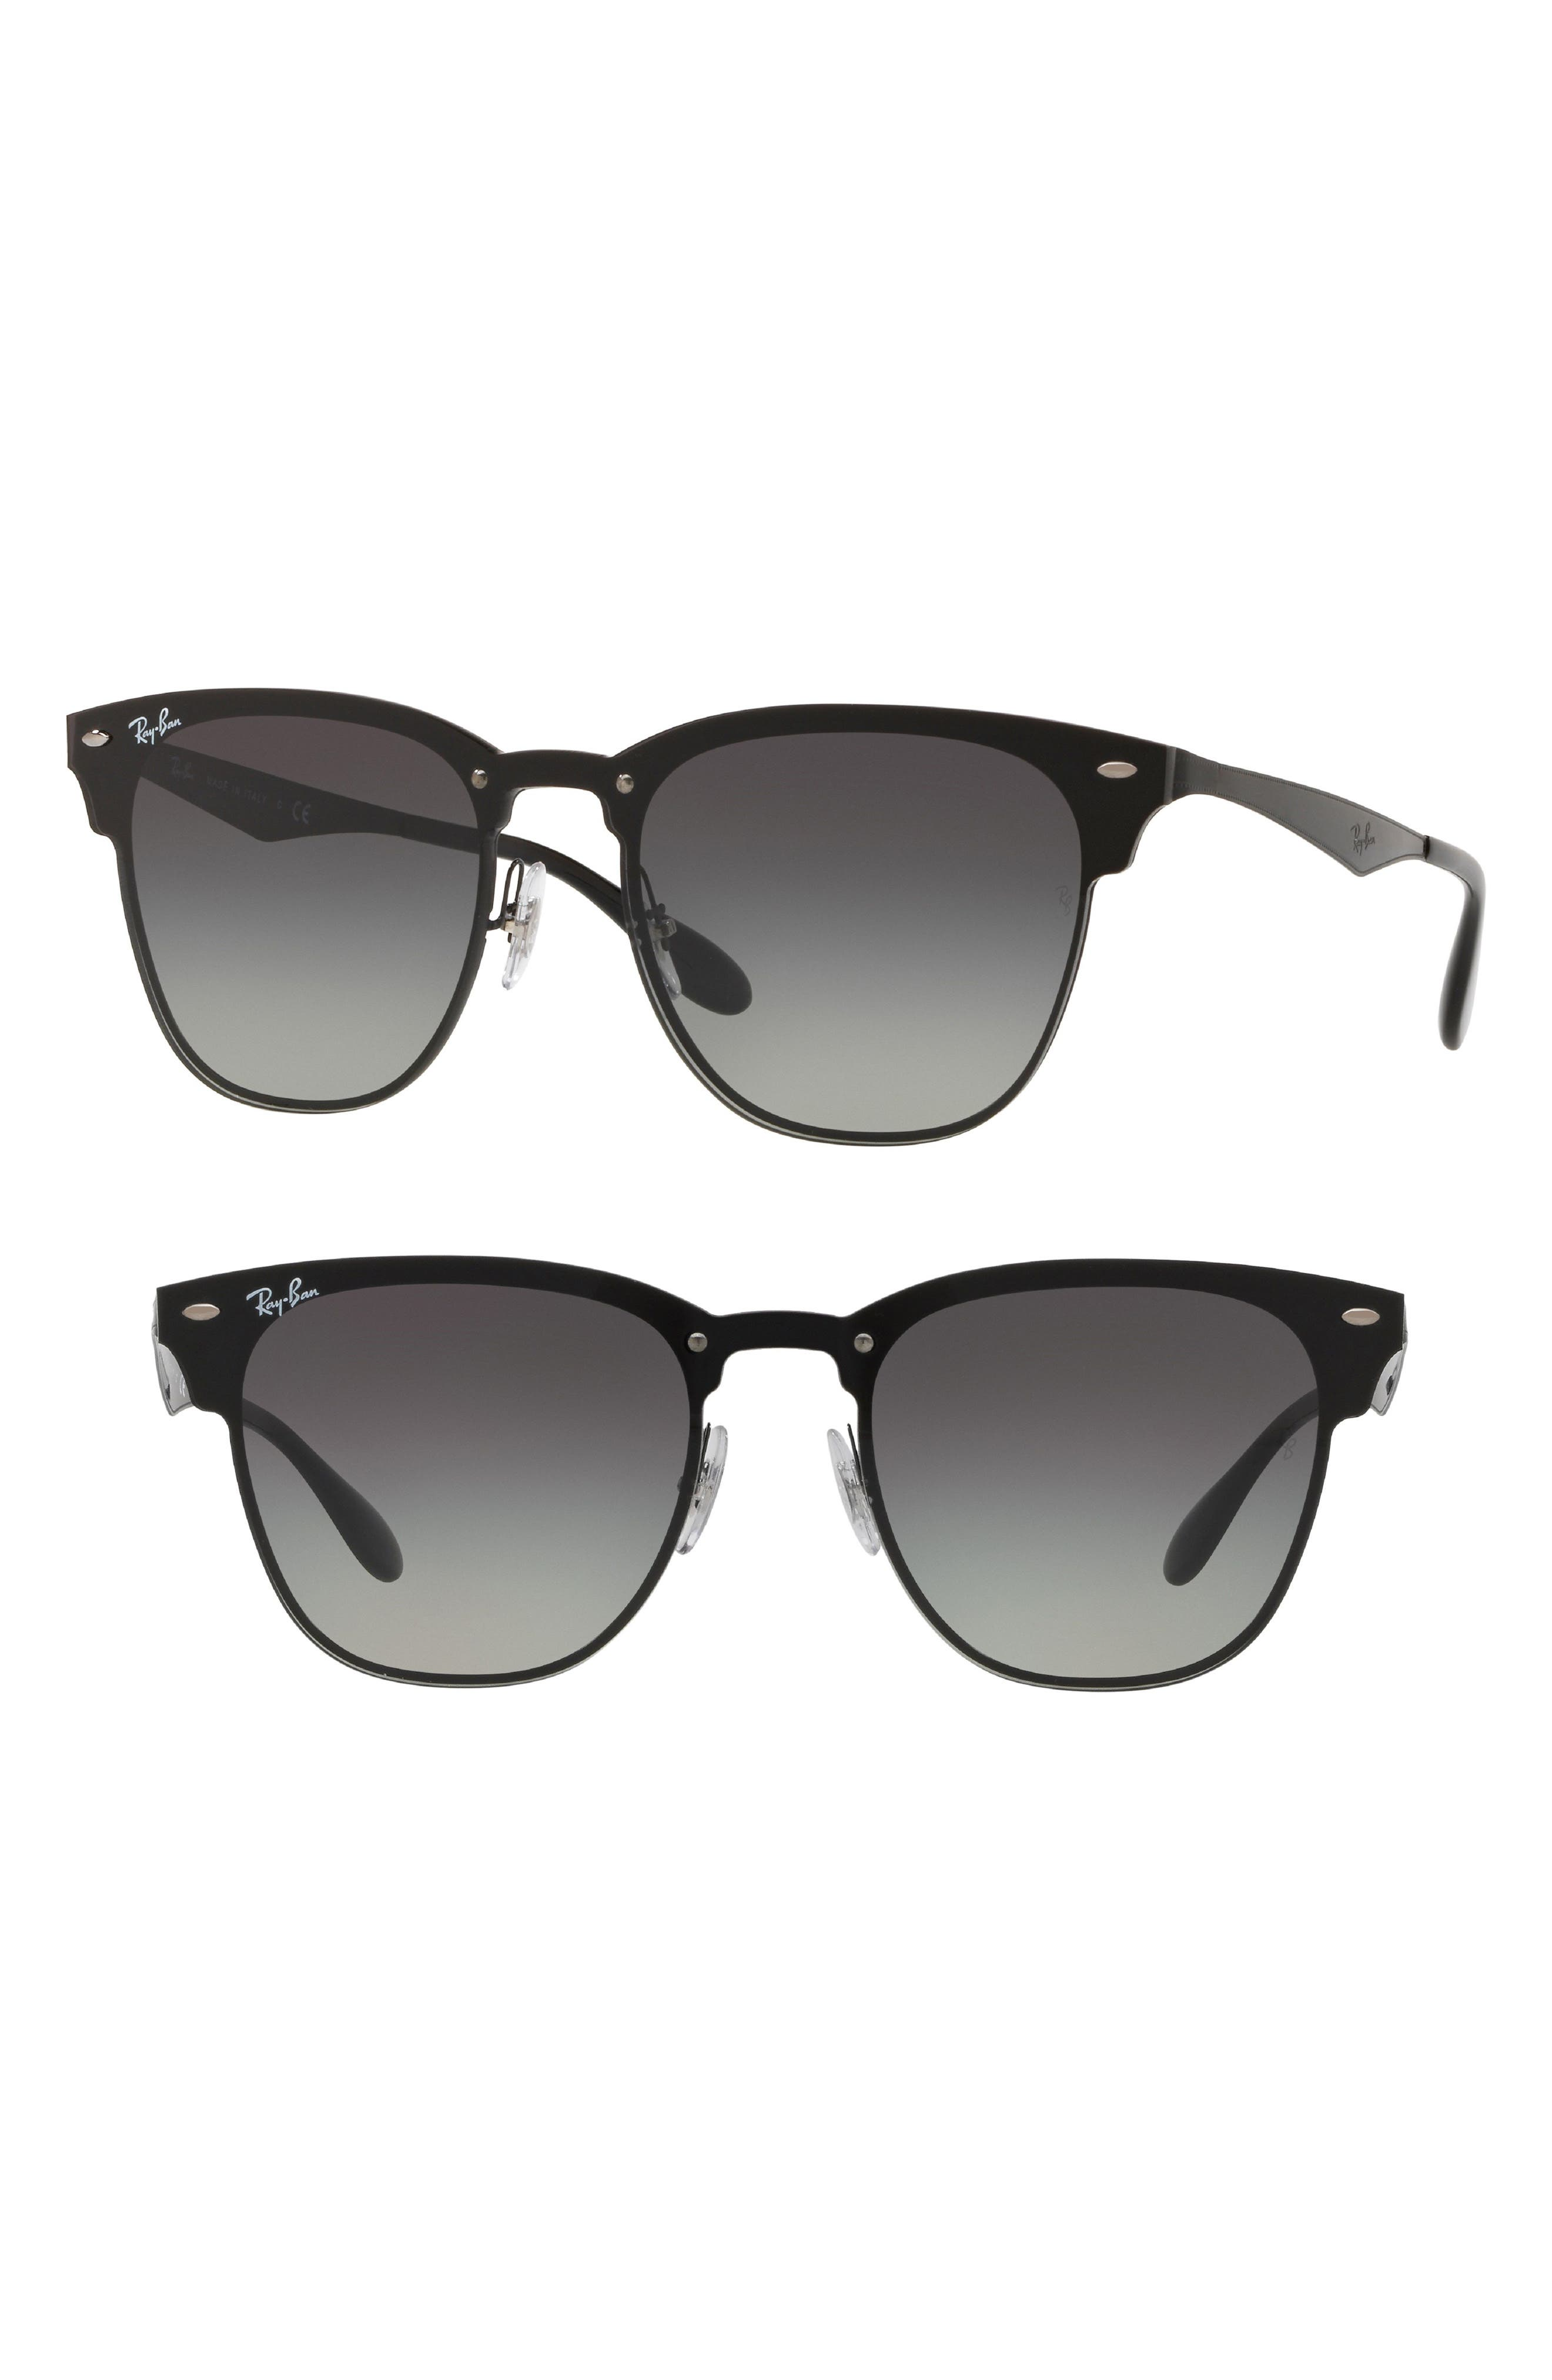 Blaze Clubmaster 50mm Sunglasses,                         Main,                         color,